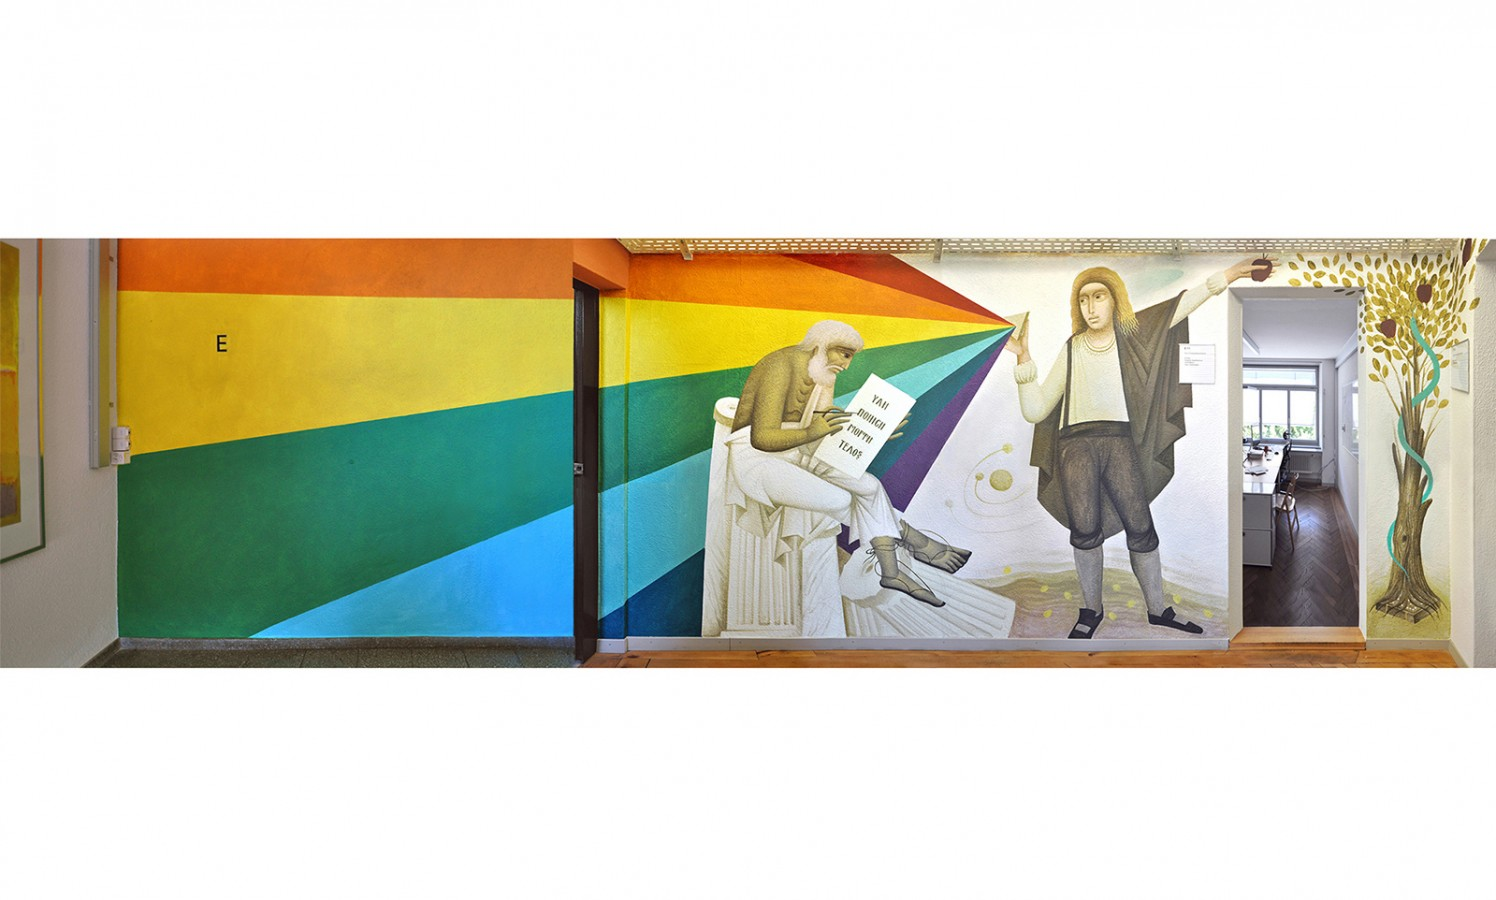 fikos-antonios-new-murals-at-eth-zurich-11